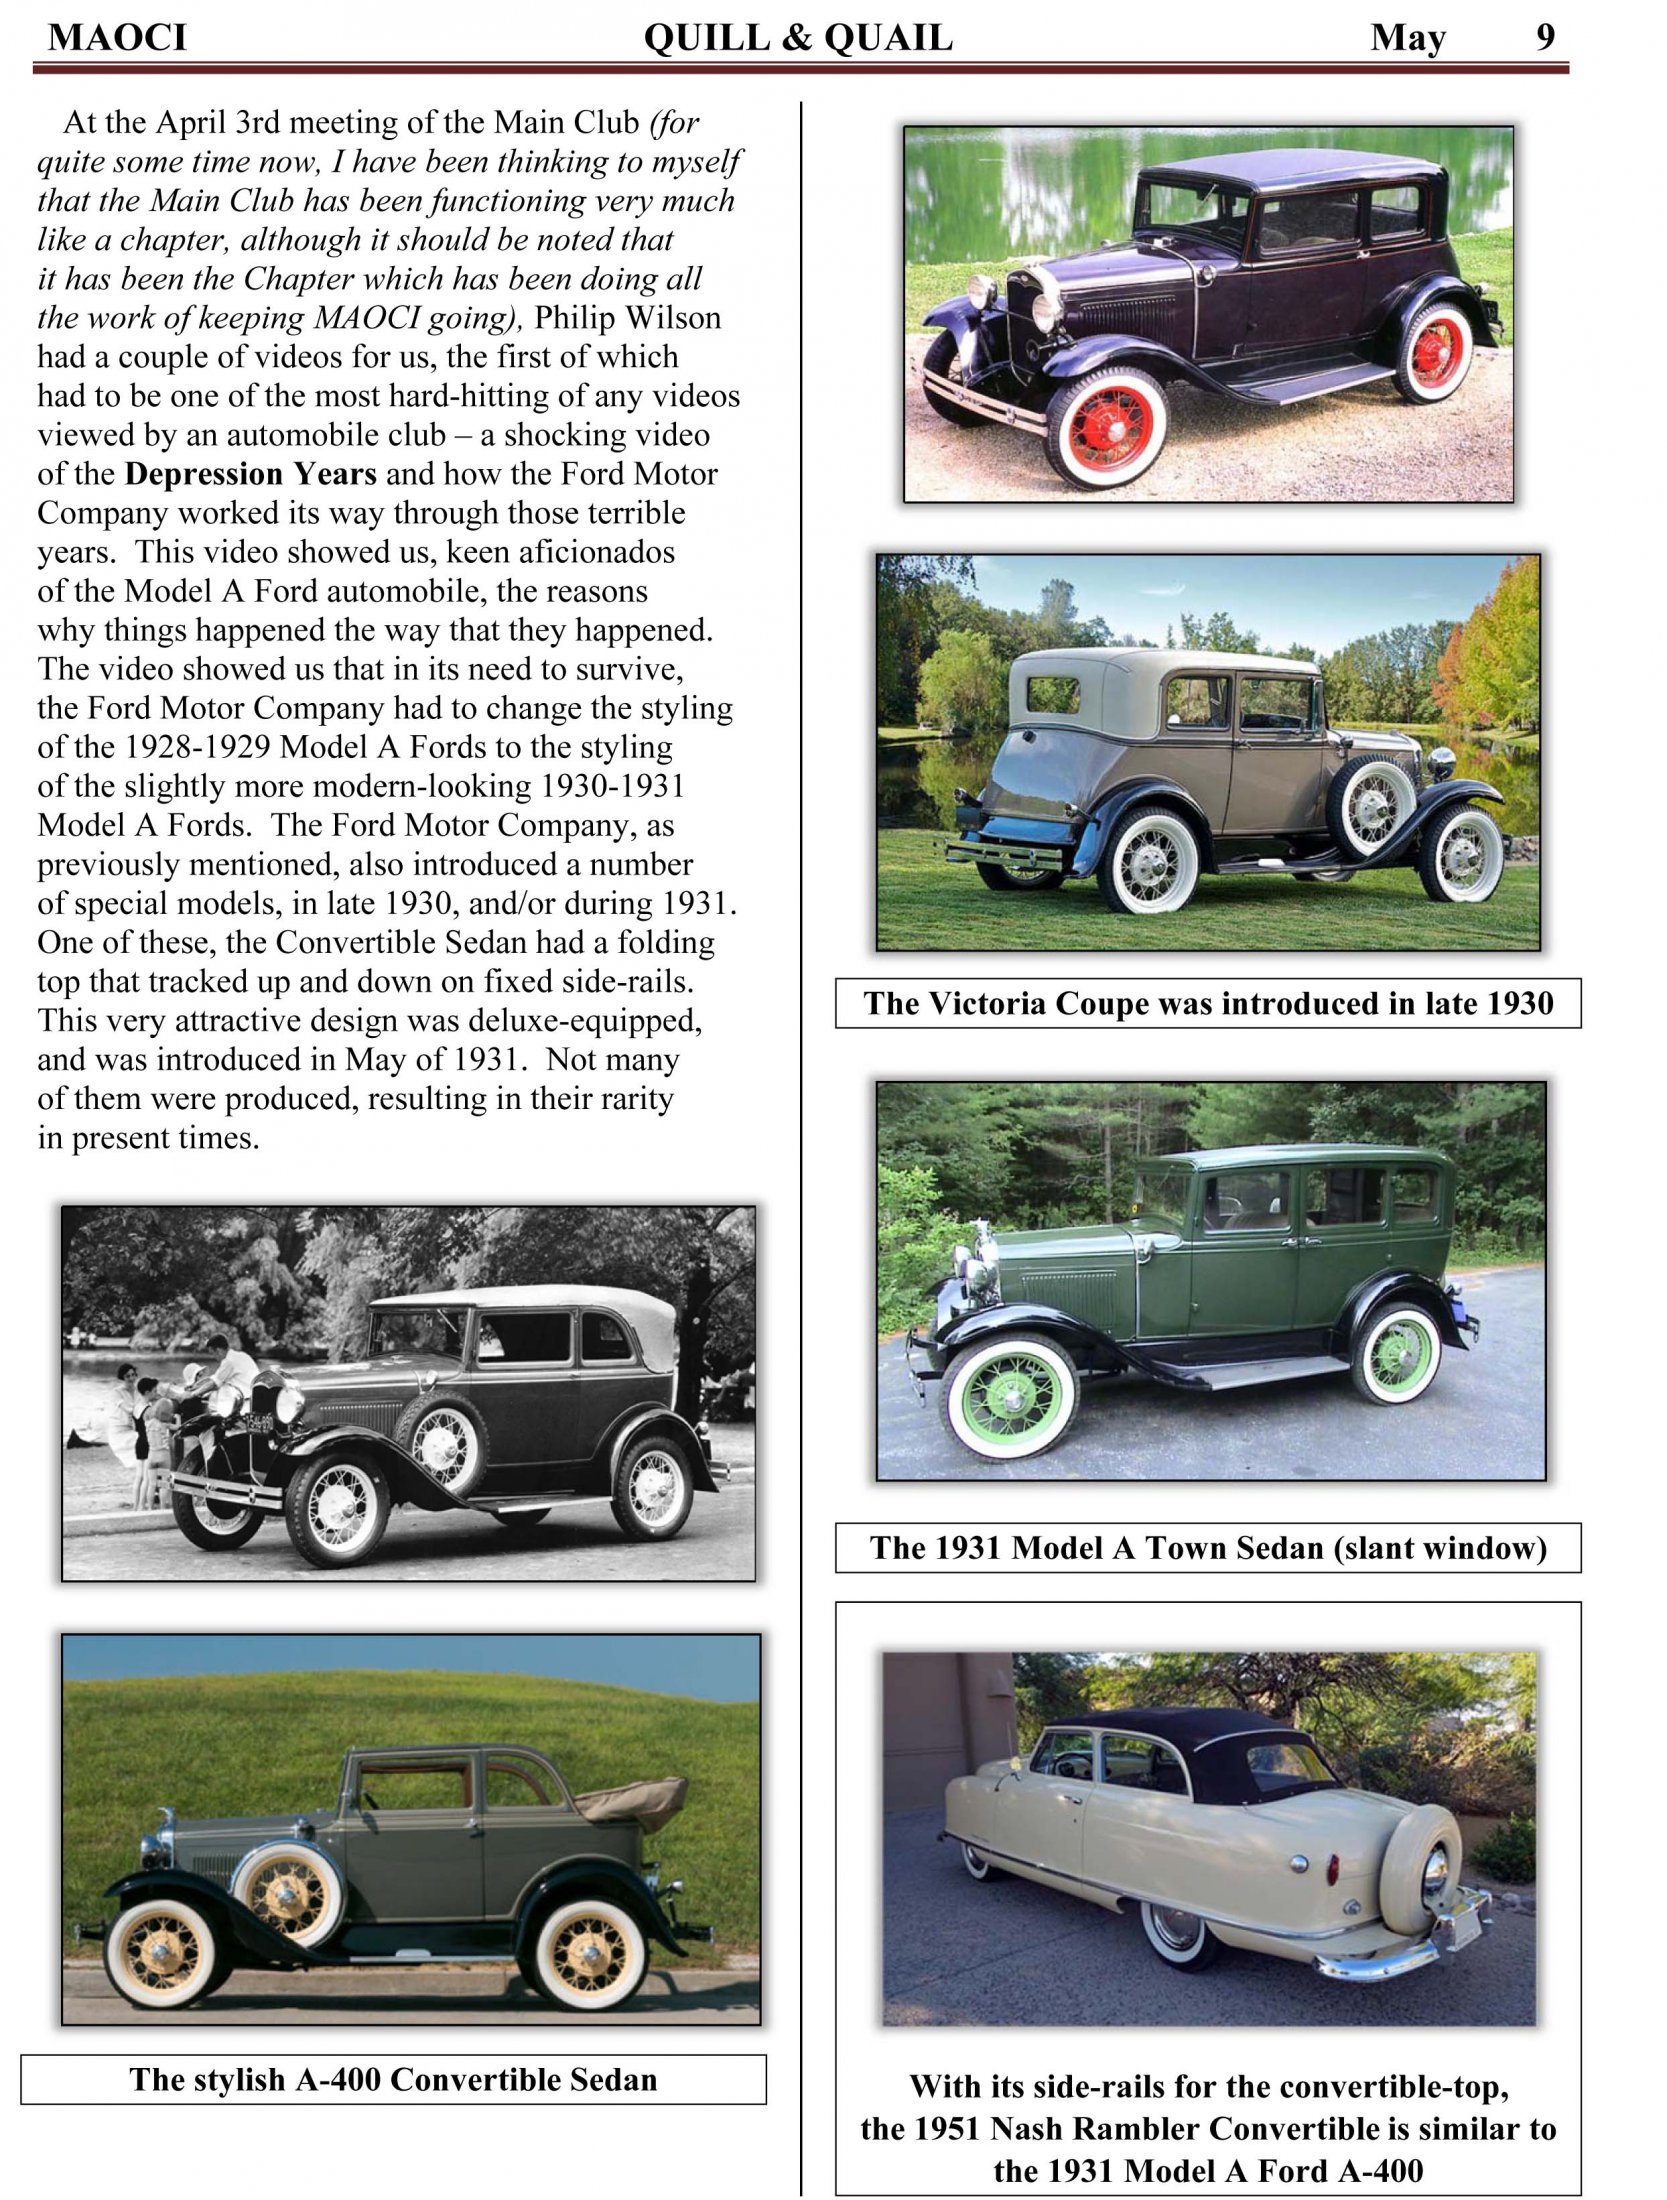 The History Of Ford And The 20 Million Model A In 2018 May Q&Q-7